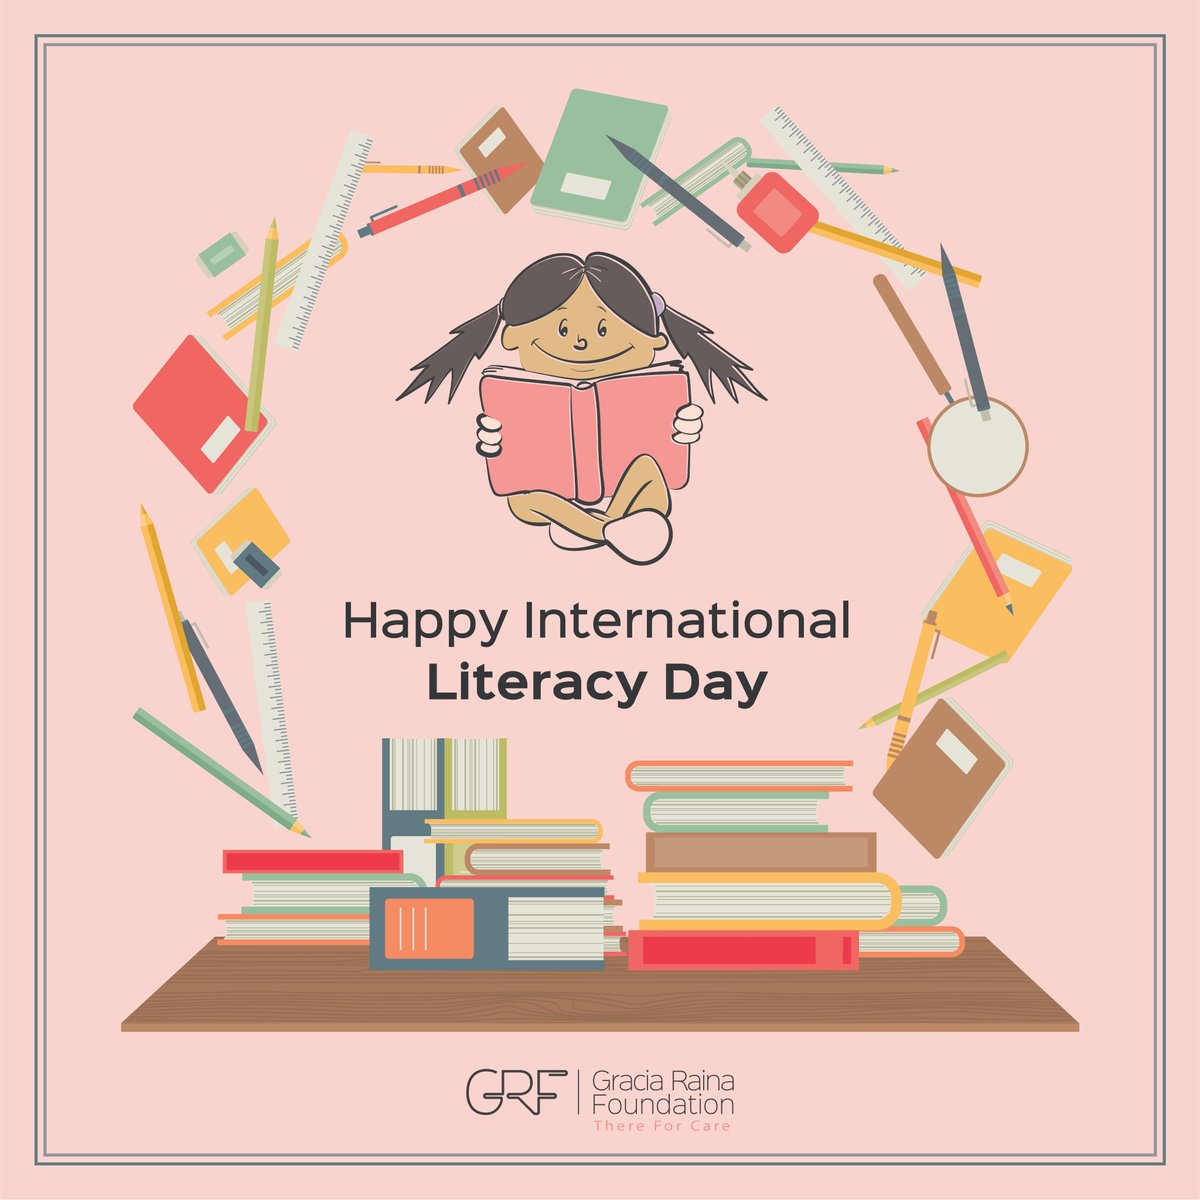 #Literacy unlocks the door of learning throughout the life. Its essential for us to develop & be productive citizens of our country. @grfcare is creating literacy and awareness through various educating workshops on health, rights & responsibilities! #InternationalLiteracyDay